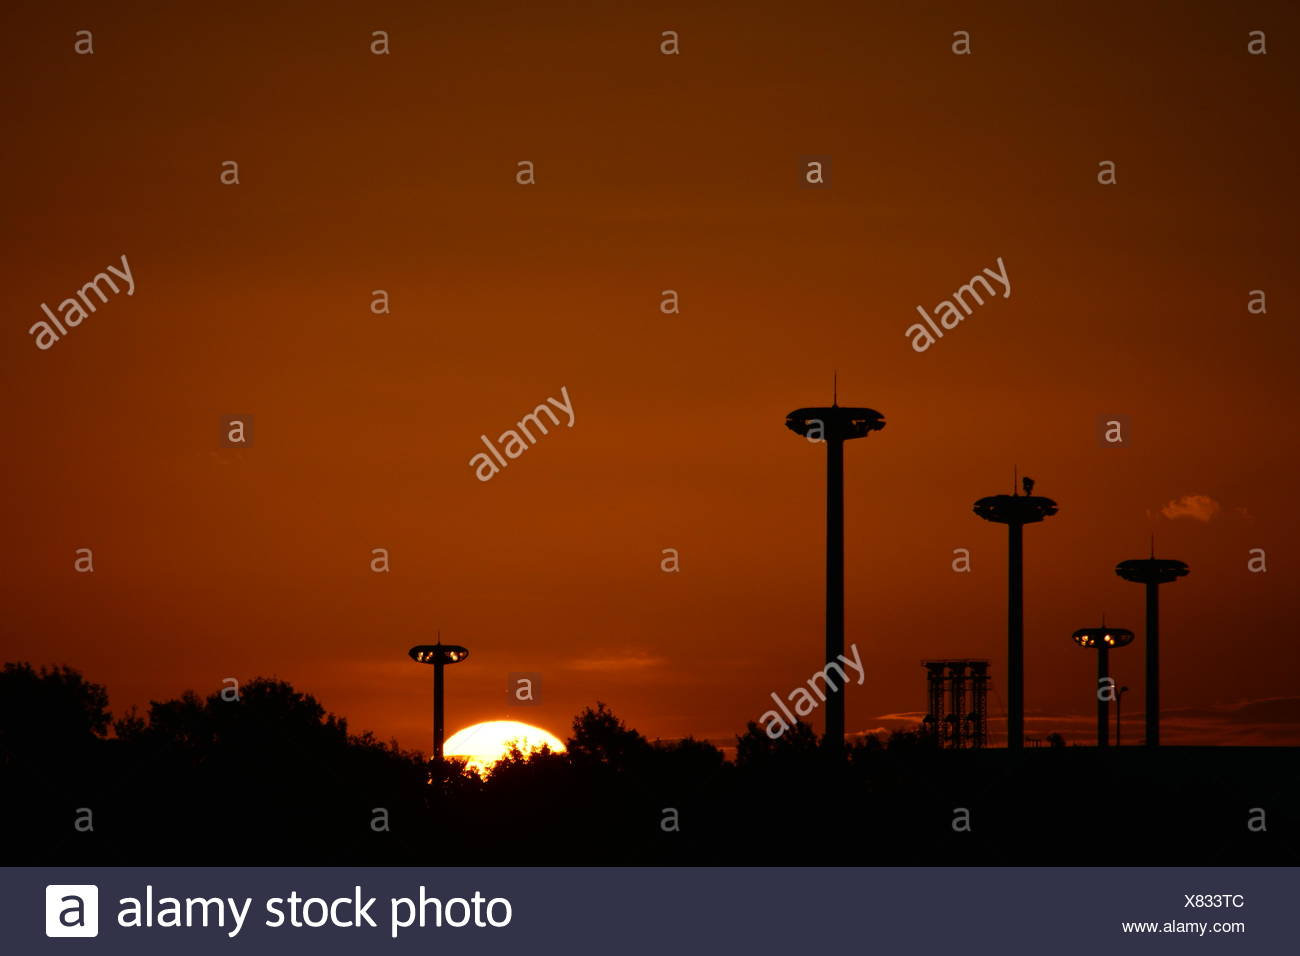 Silhouette Of Floodlight - Stock Image